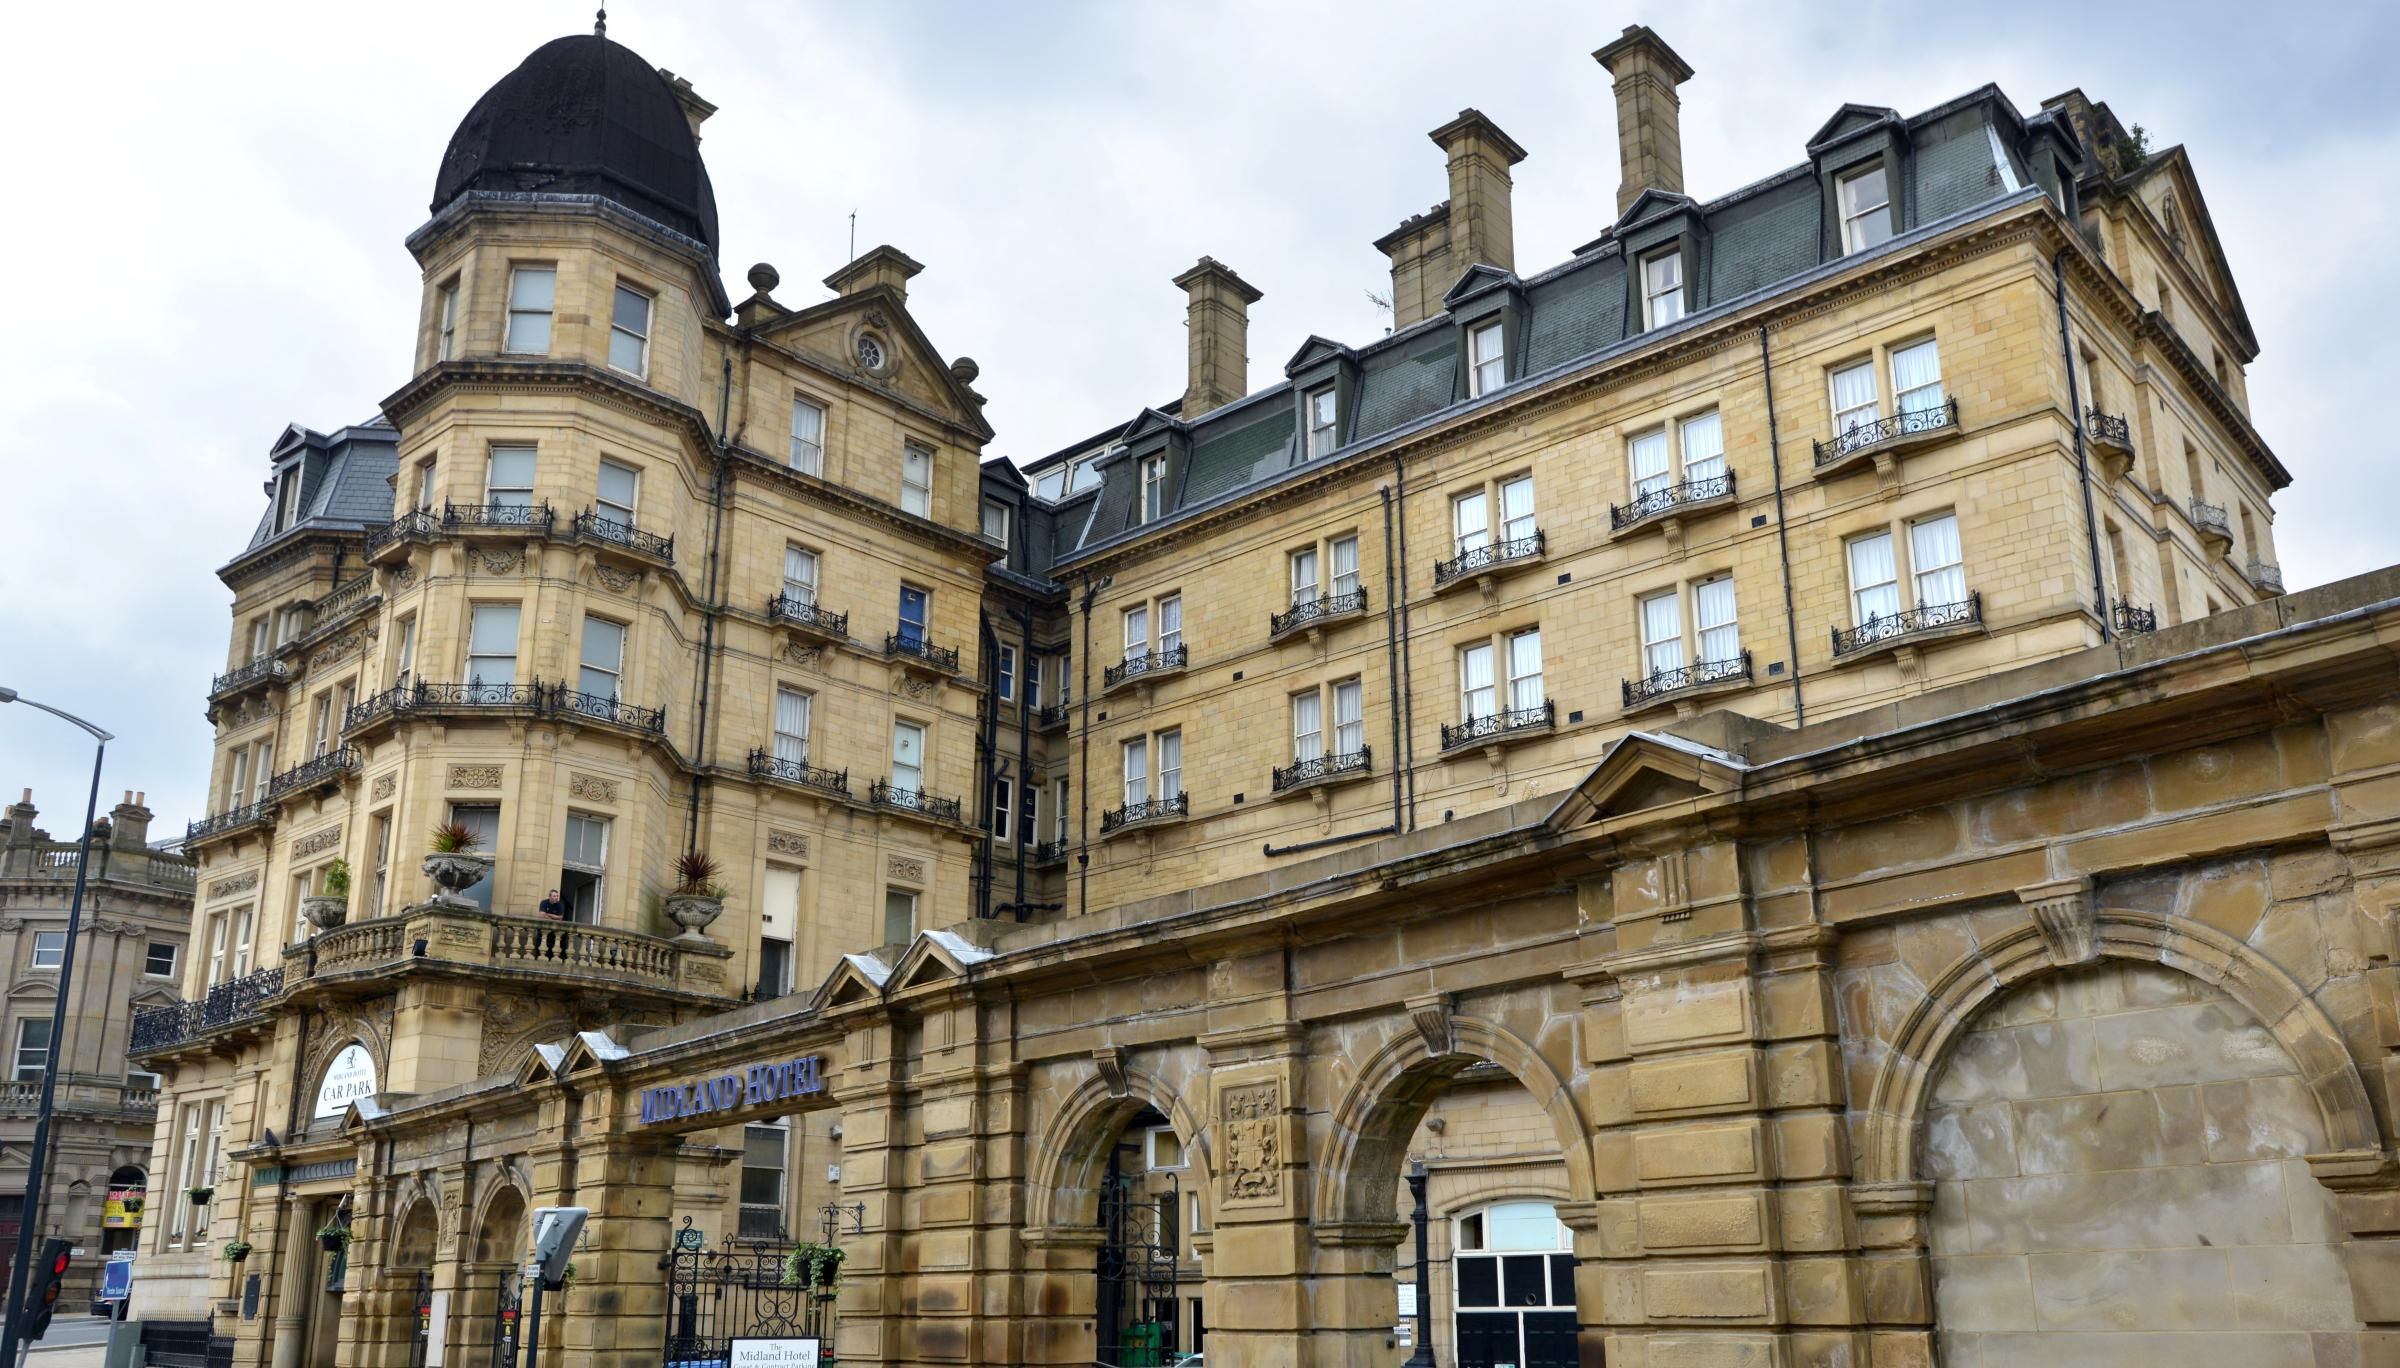 Feature on the Historic Midland hotel in Bradford..